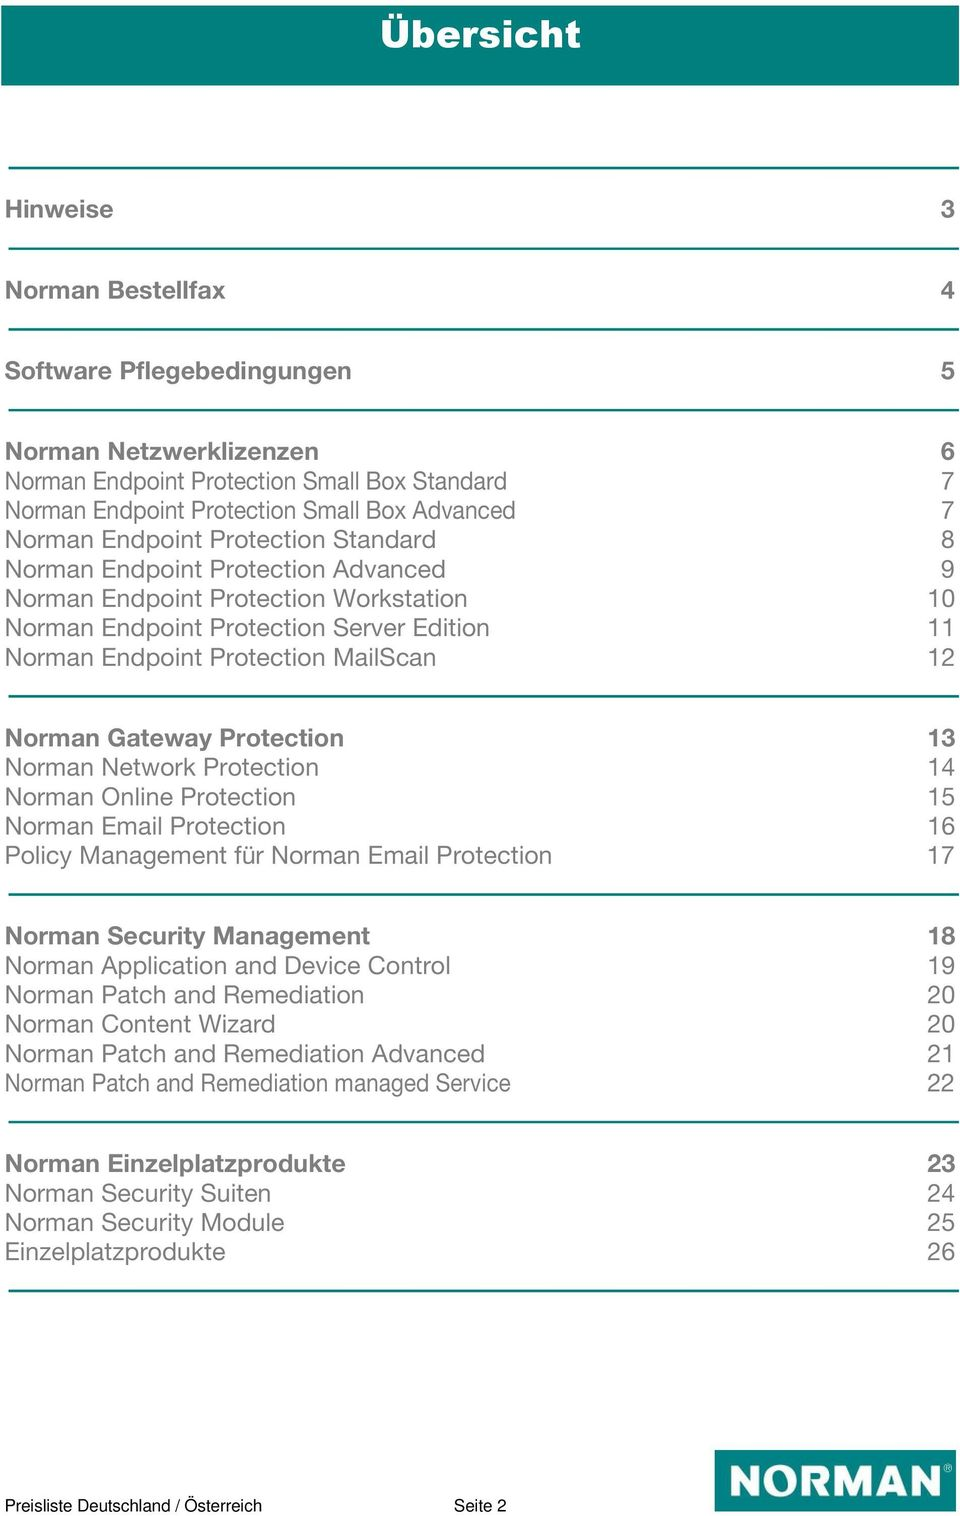 Norman Gateway Protection 13 Norman Network Protection 14 Norman Online Protection 15 Norman Email Protection 16 Policy Management für Norman Email Protection 17 Norman Security Management 18 Norman